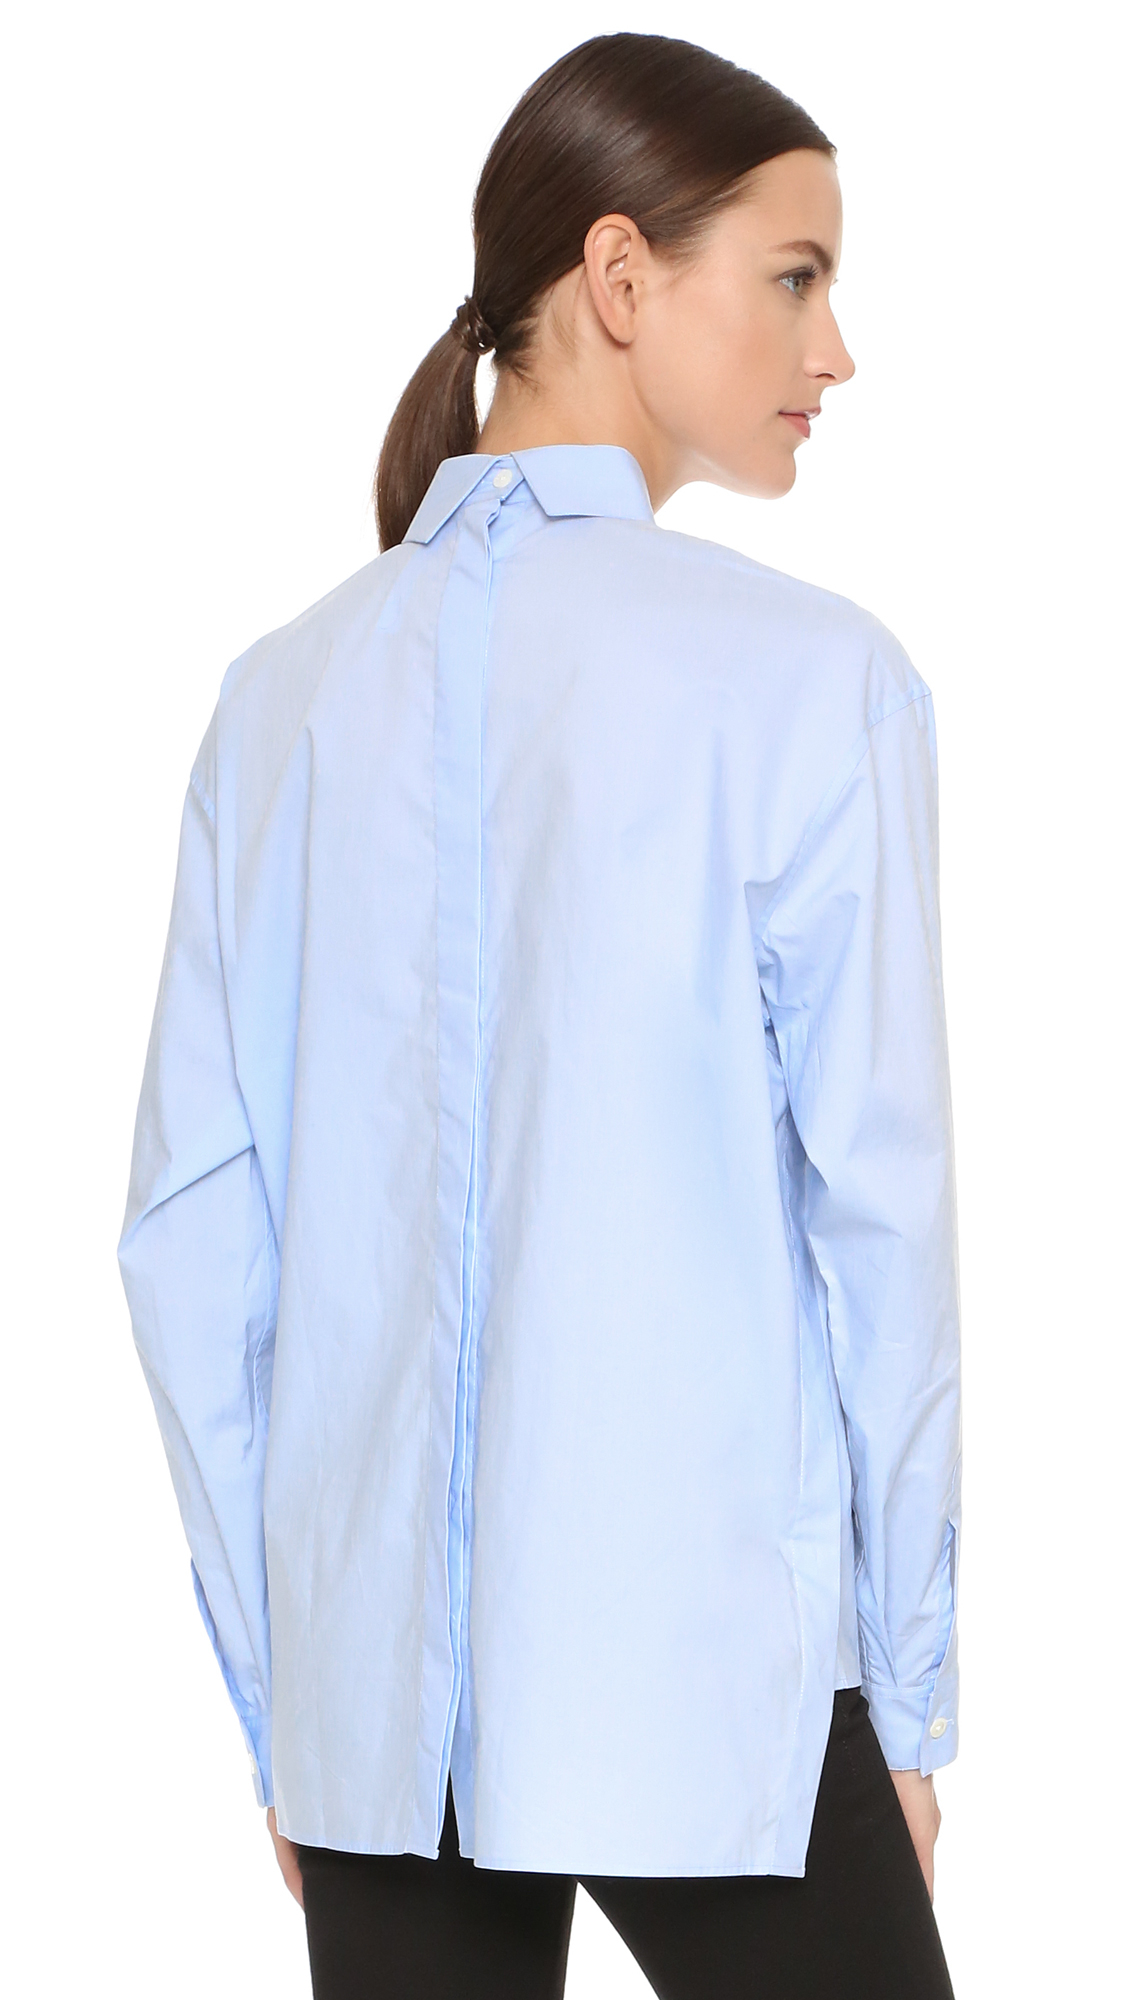 Cost Sale Online SHIRTS - Shirts Dion Lee Discount Low Price Free Shipping Best Wholesale vxtibwa